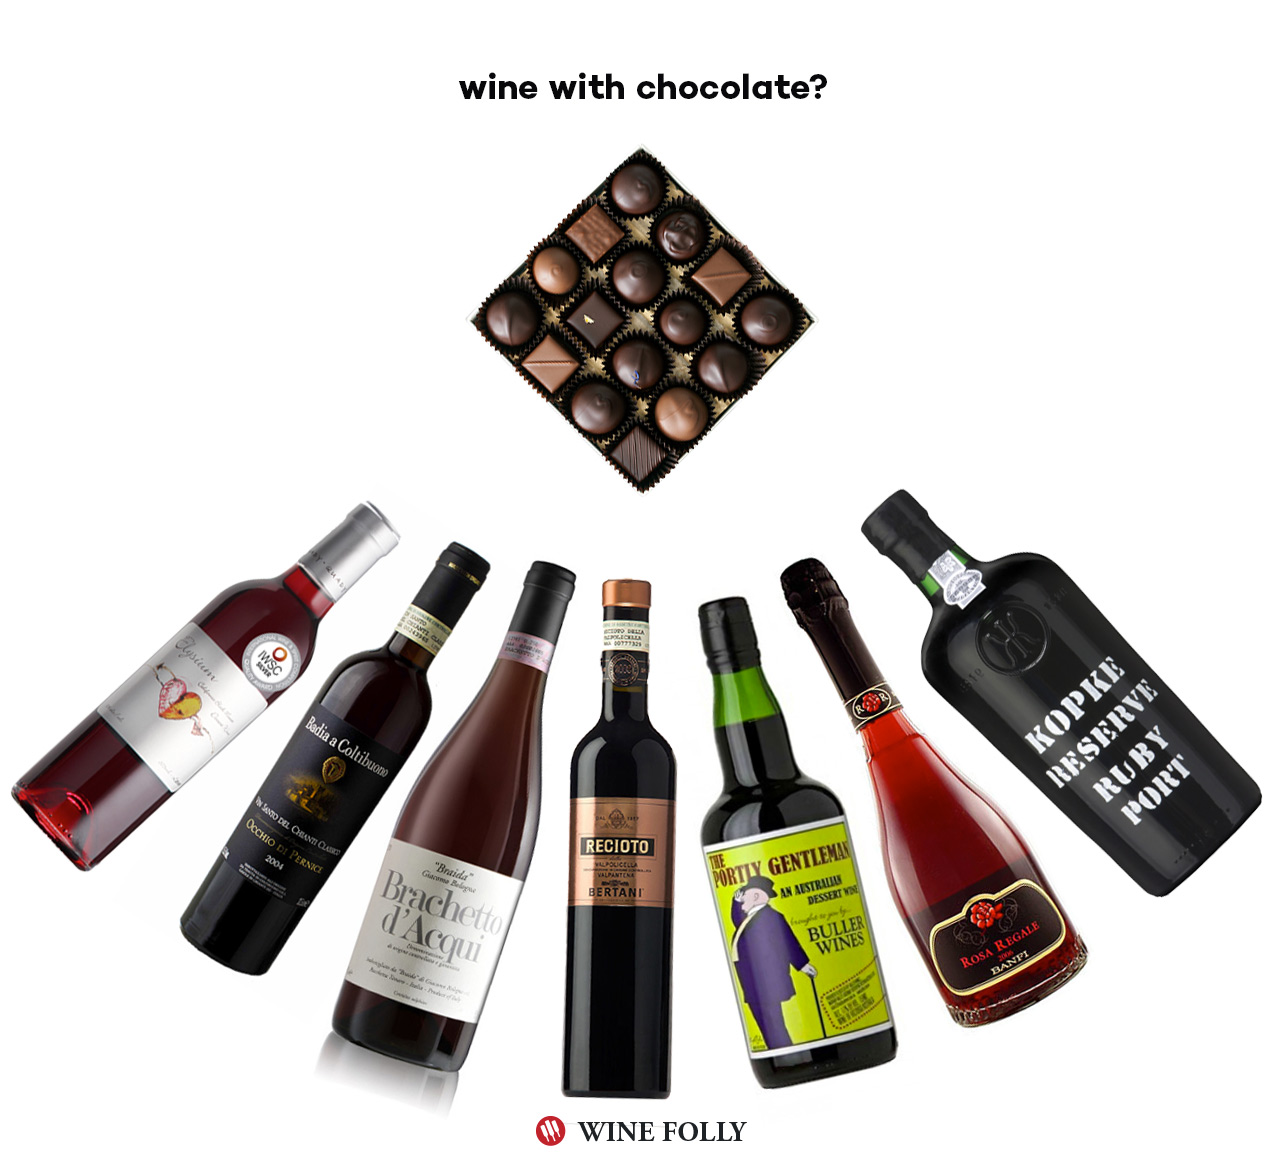 wine-with-chocolate-recommendations-wine-folly